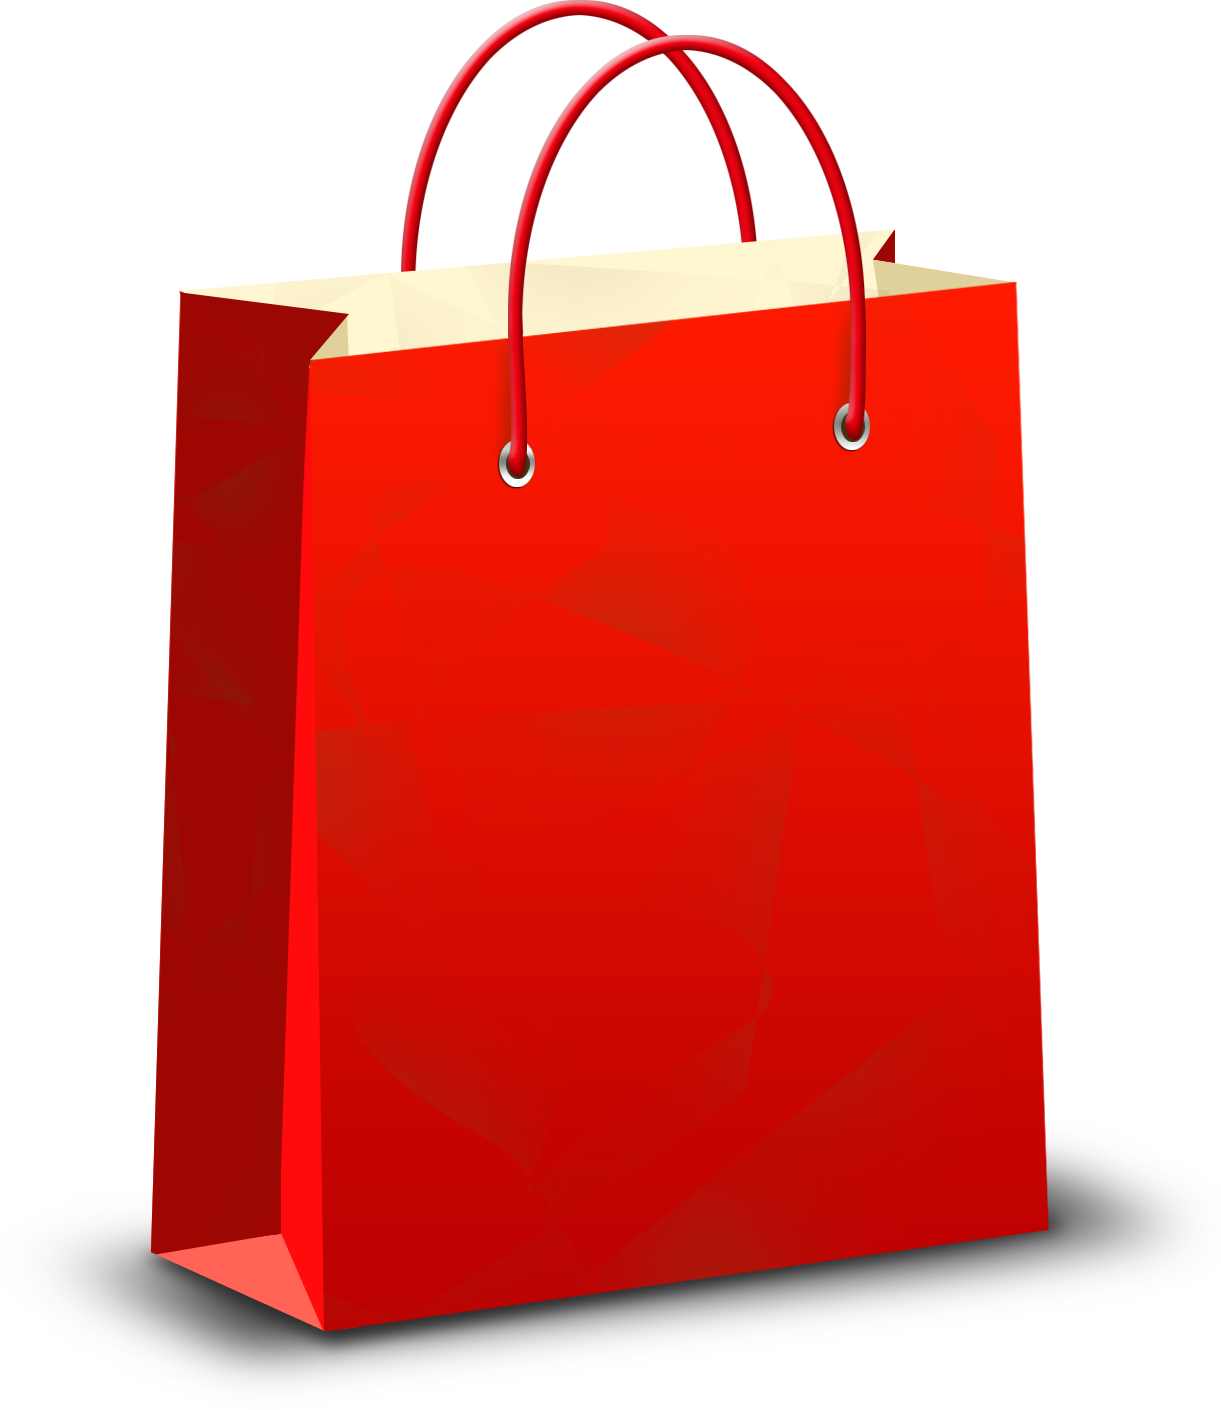 Red purse png. Bag transparent pictures free